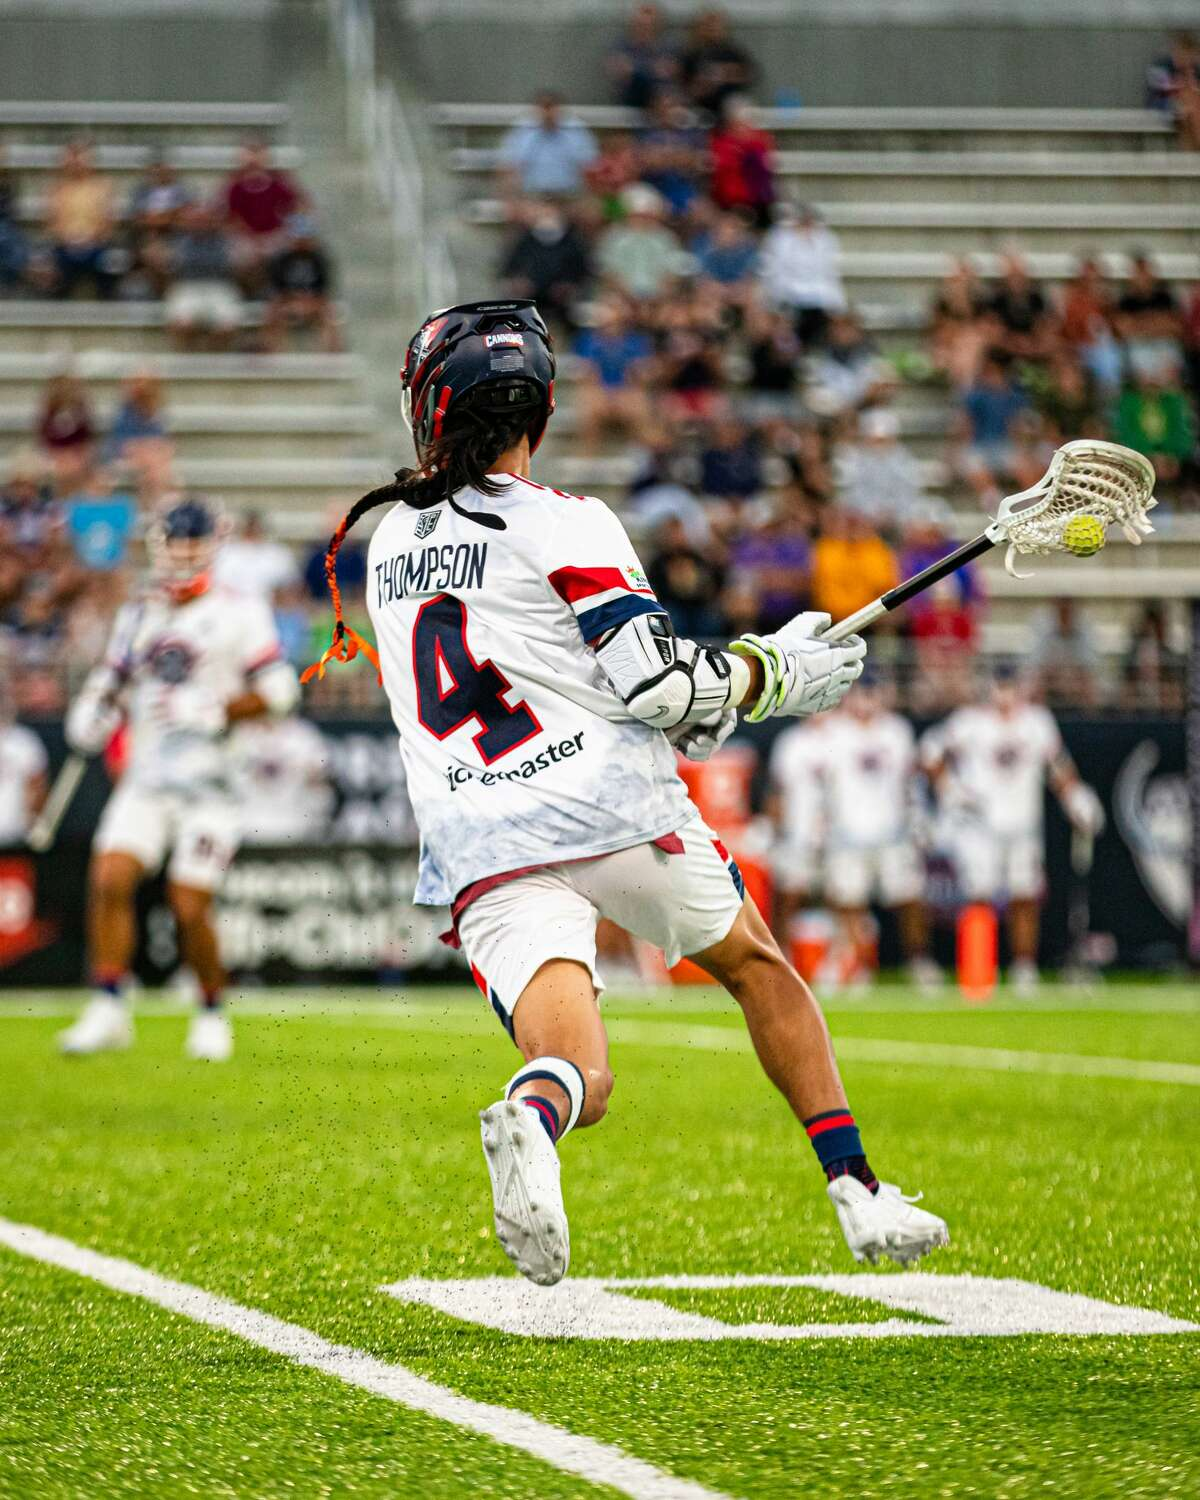 Former UAlbany star Lyle Thompson is one of the attractions at this weekend's Premier Lacrosse League event at Casey Stadium. Friday and Saturday's matches are almost sold out, according to league CEO and co-founder Mike Rabil. (Premier Lacrosse League)